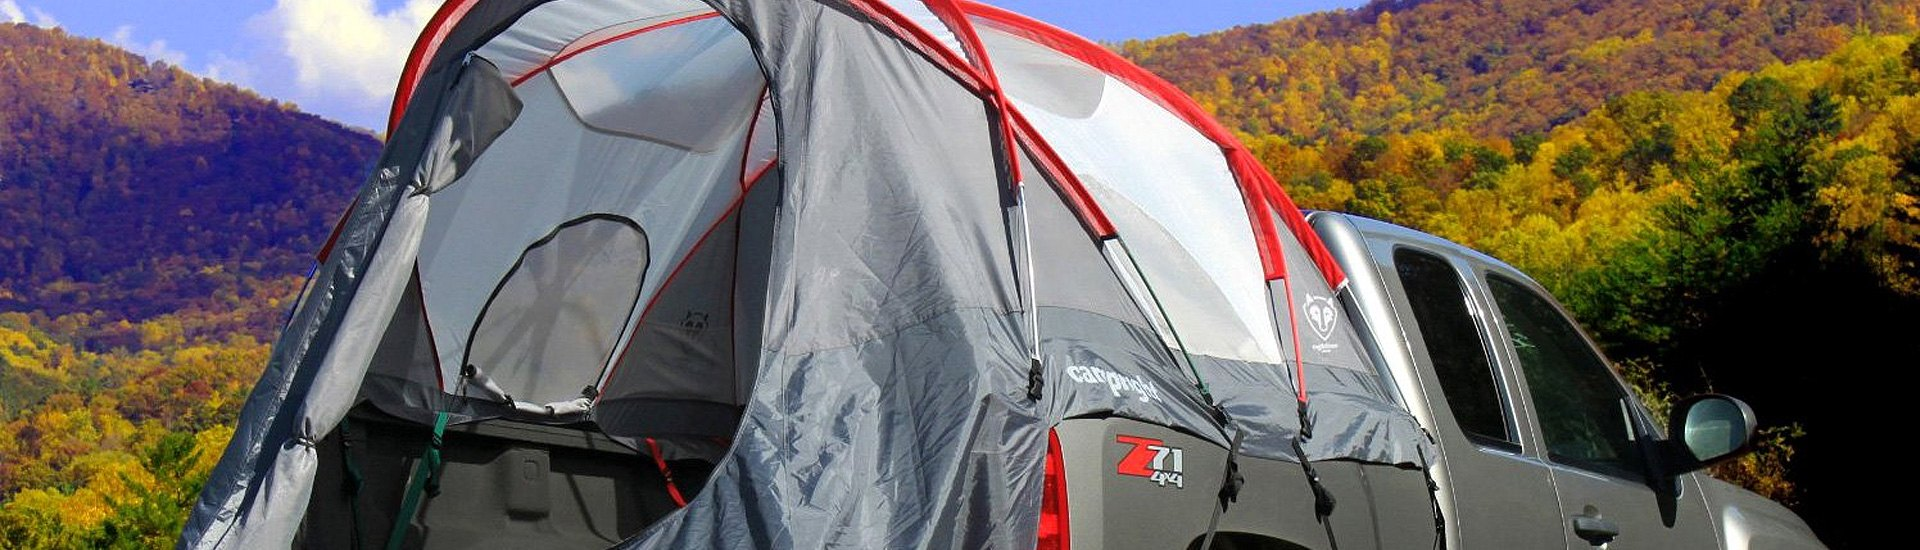 The Five Best Reasons to Spring For an Automotive Tent